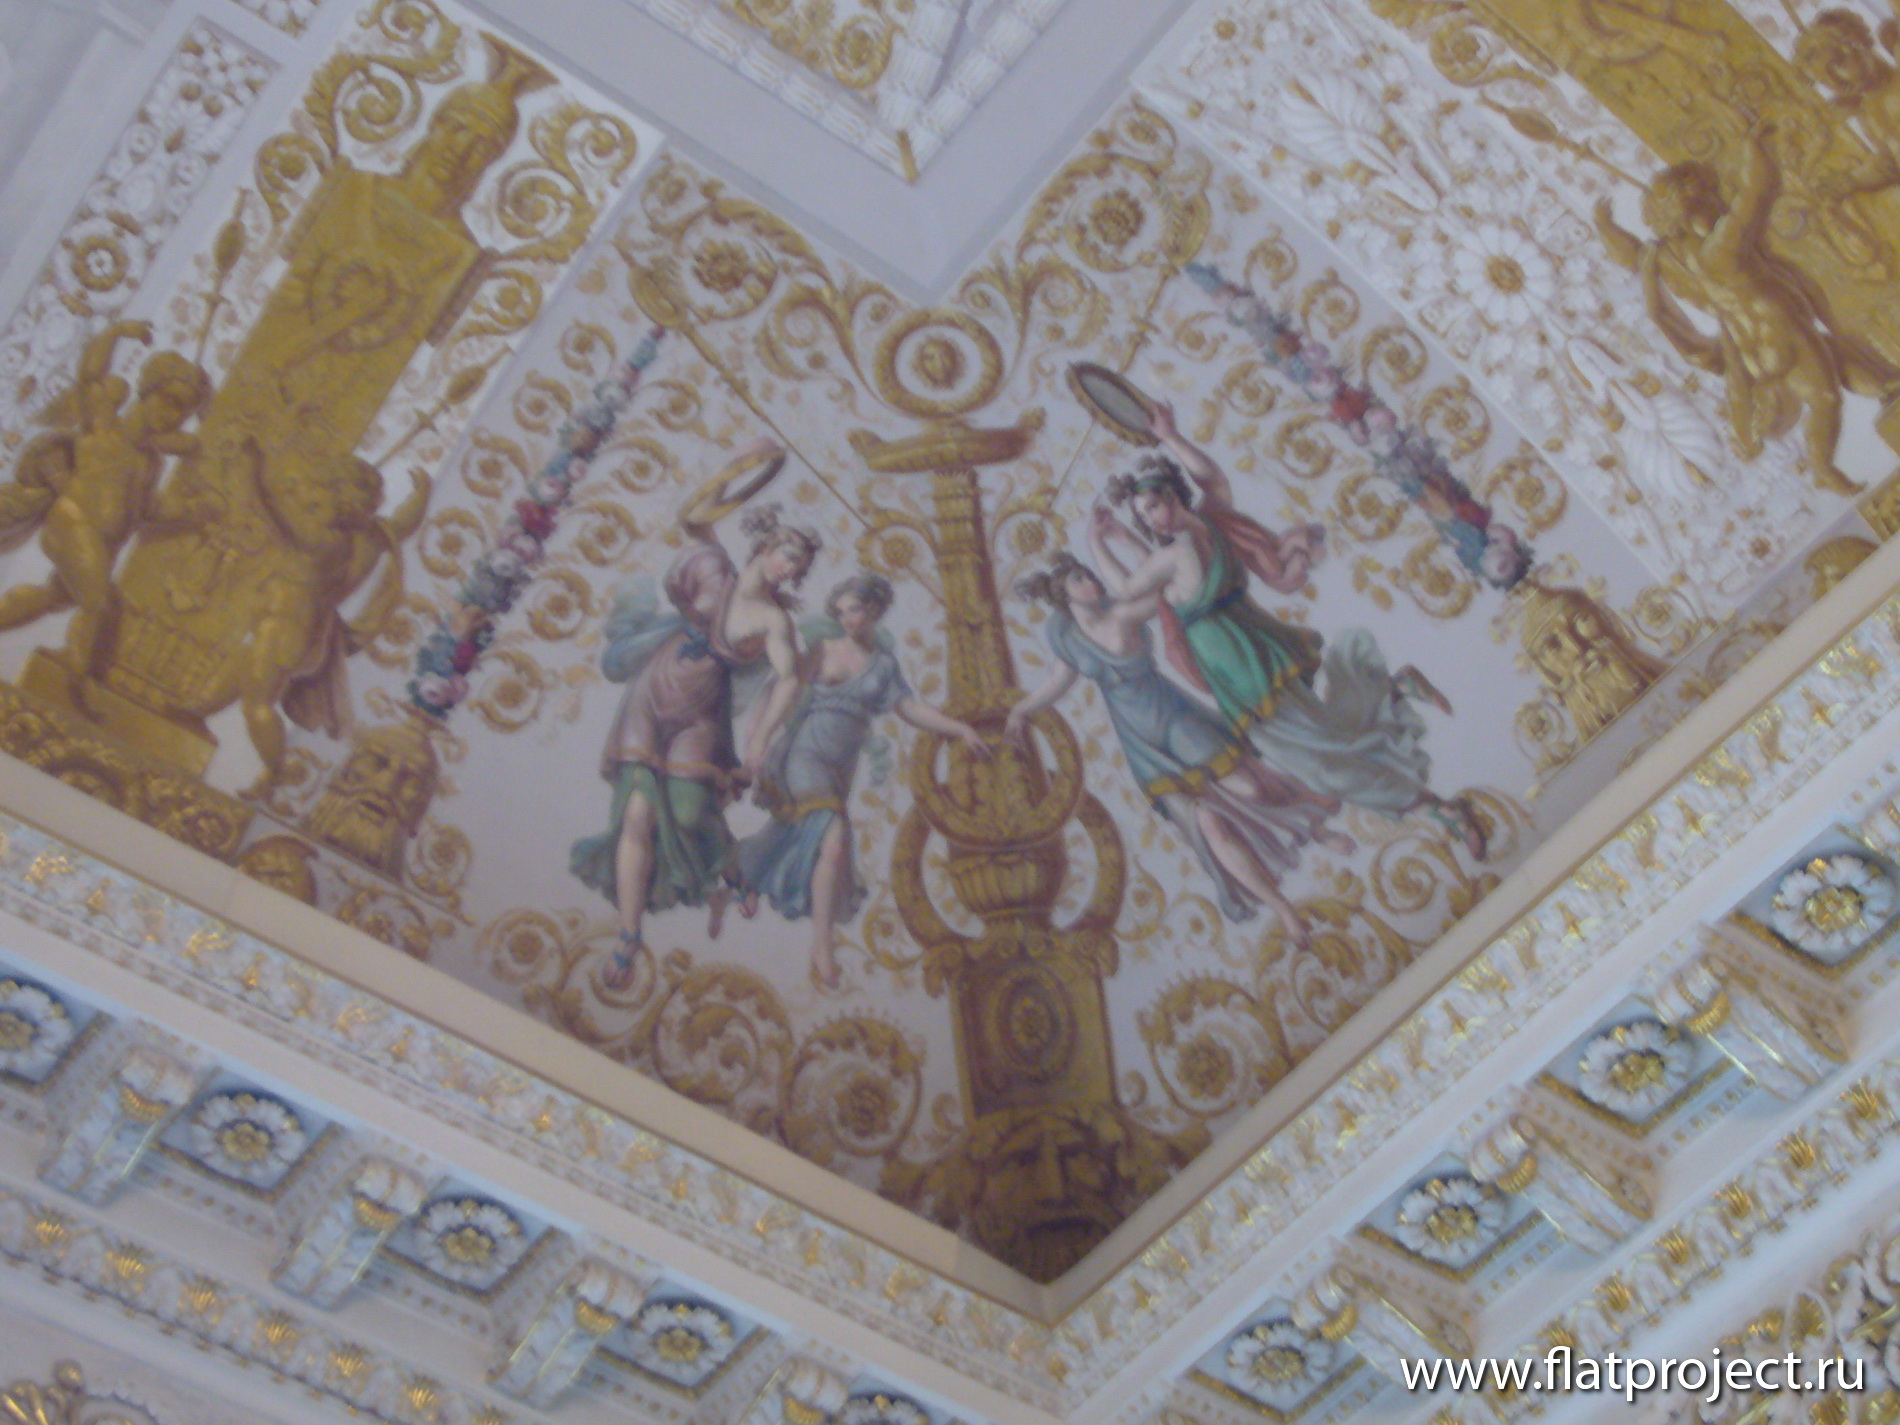 The State Russian museum interiors – photo 86